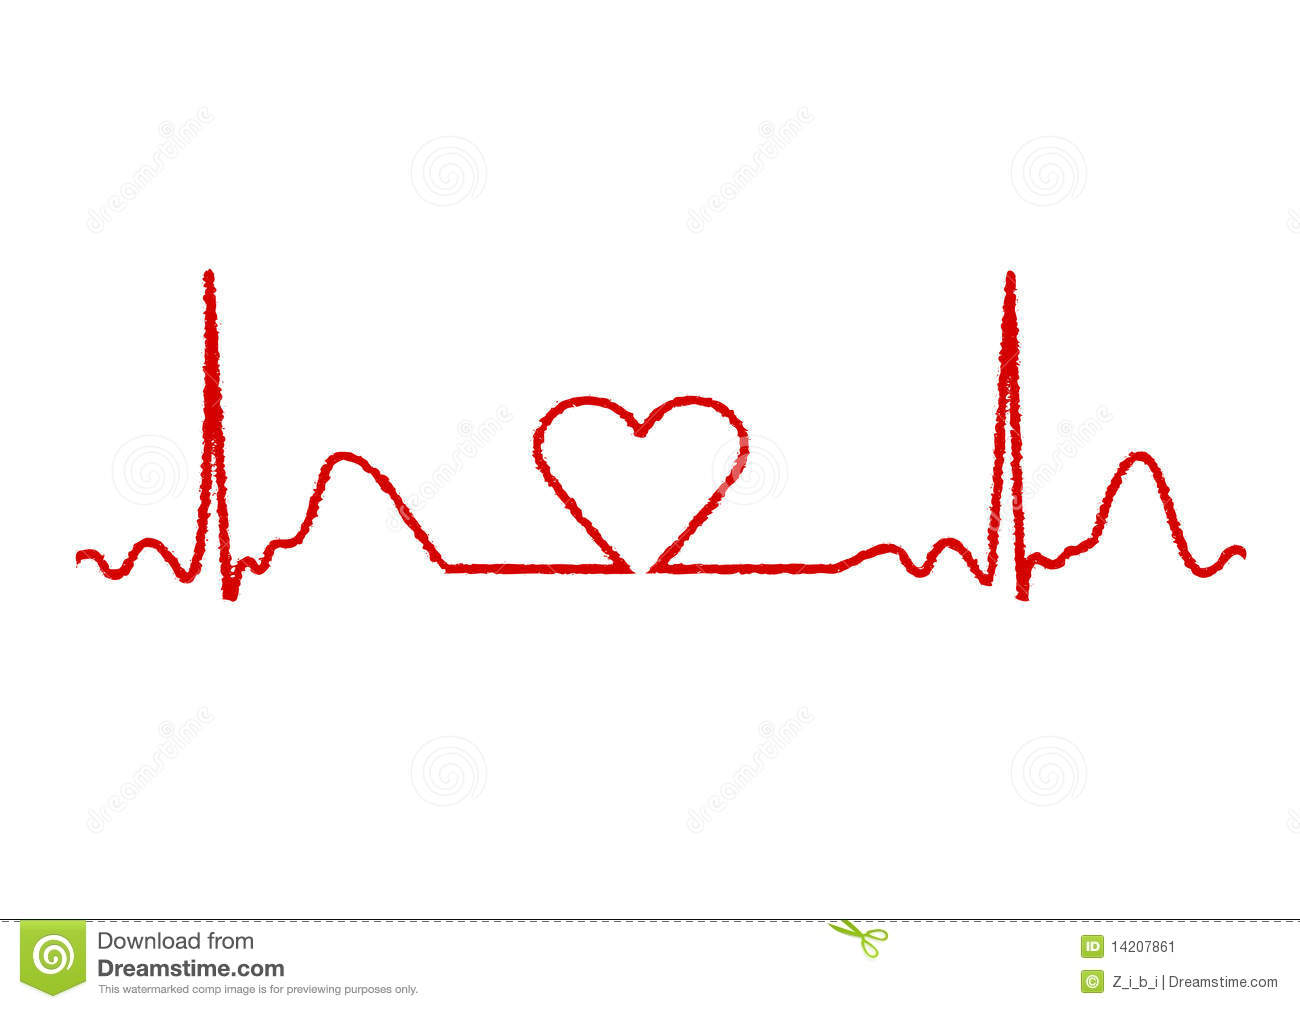 Ekg clip art tumundografico 5. Illustration Of Electrical Activity Of The Human Heart